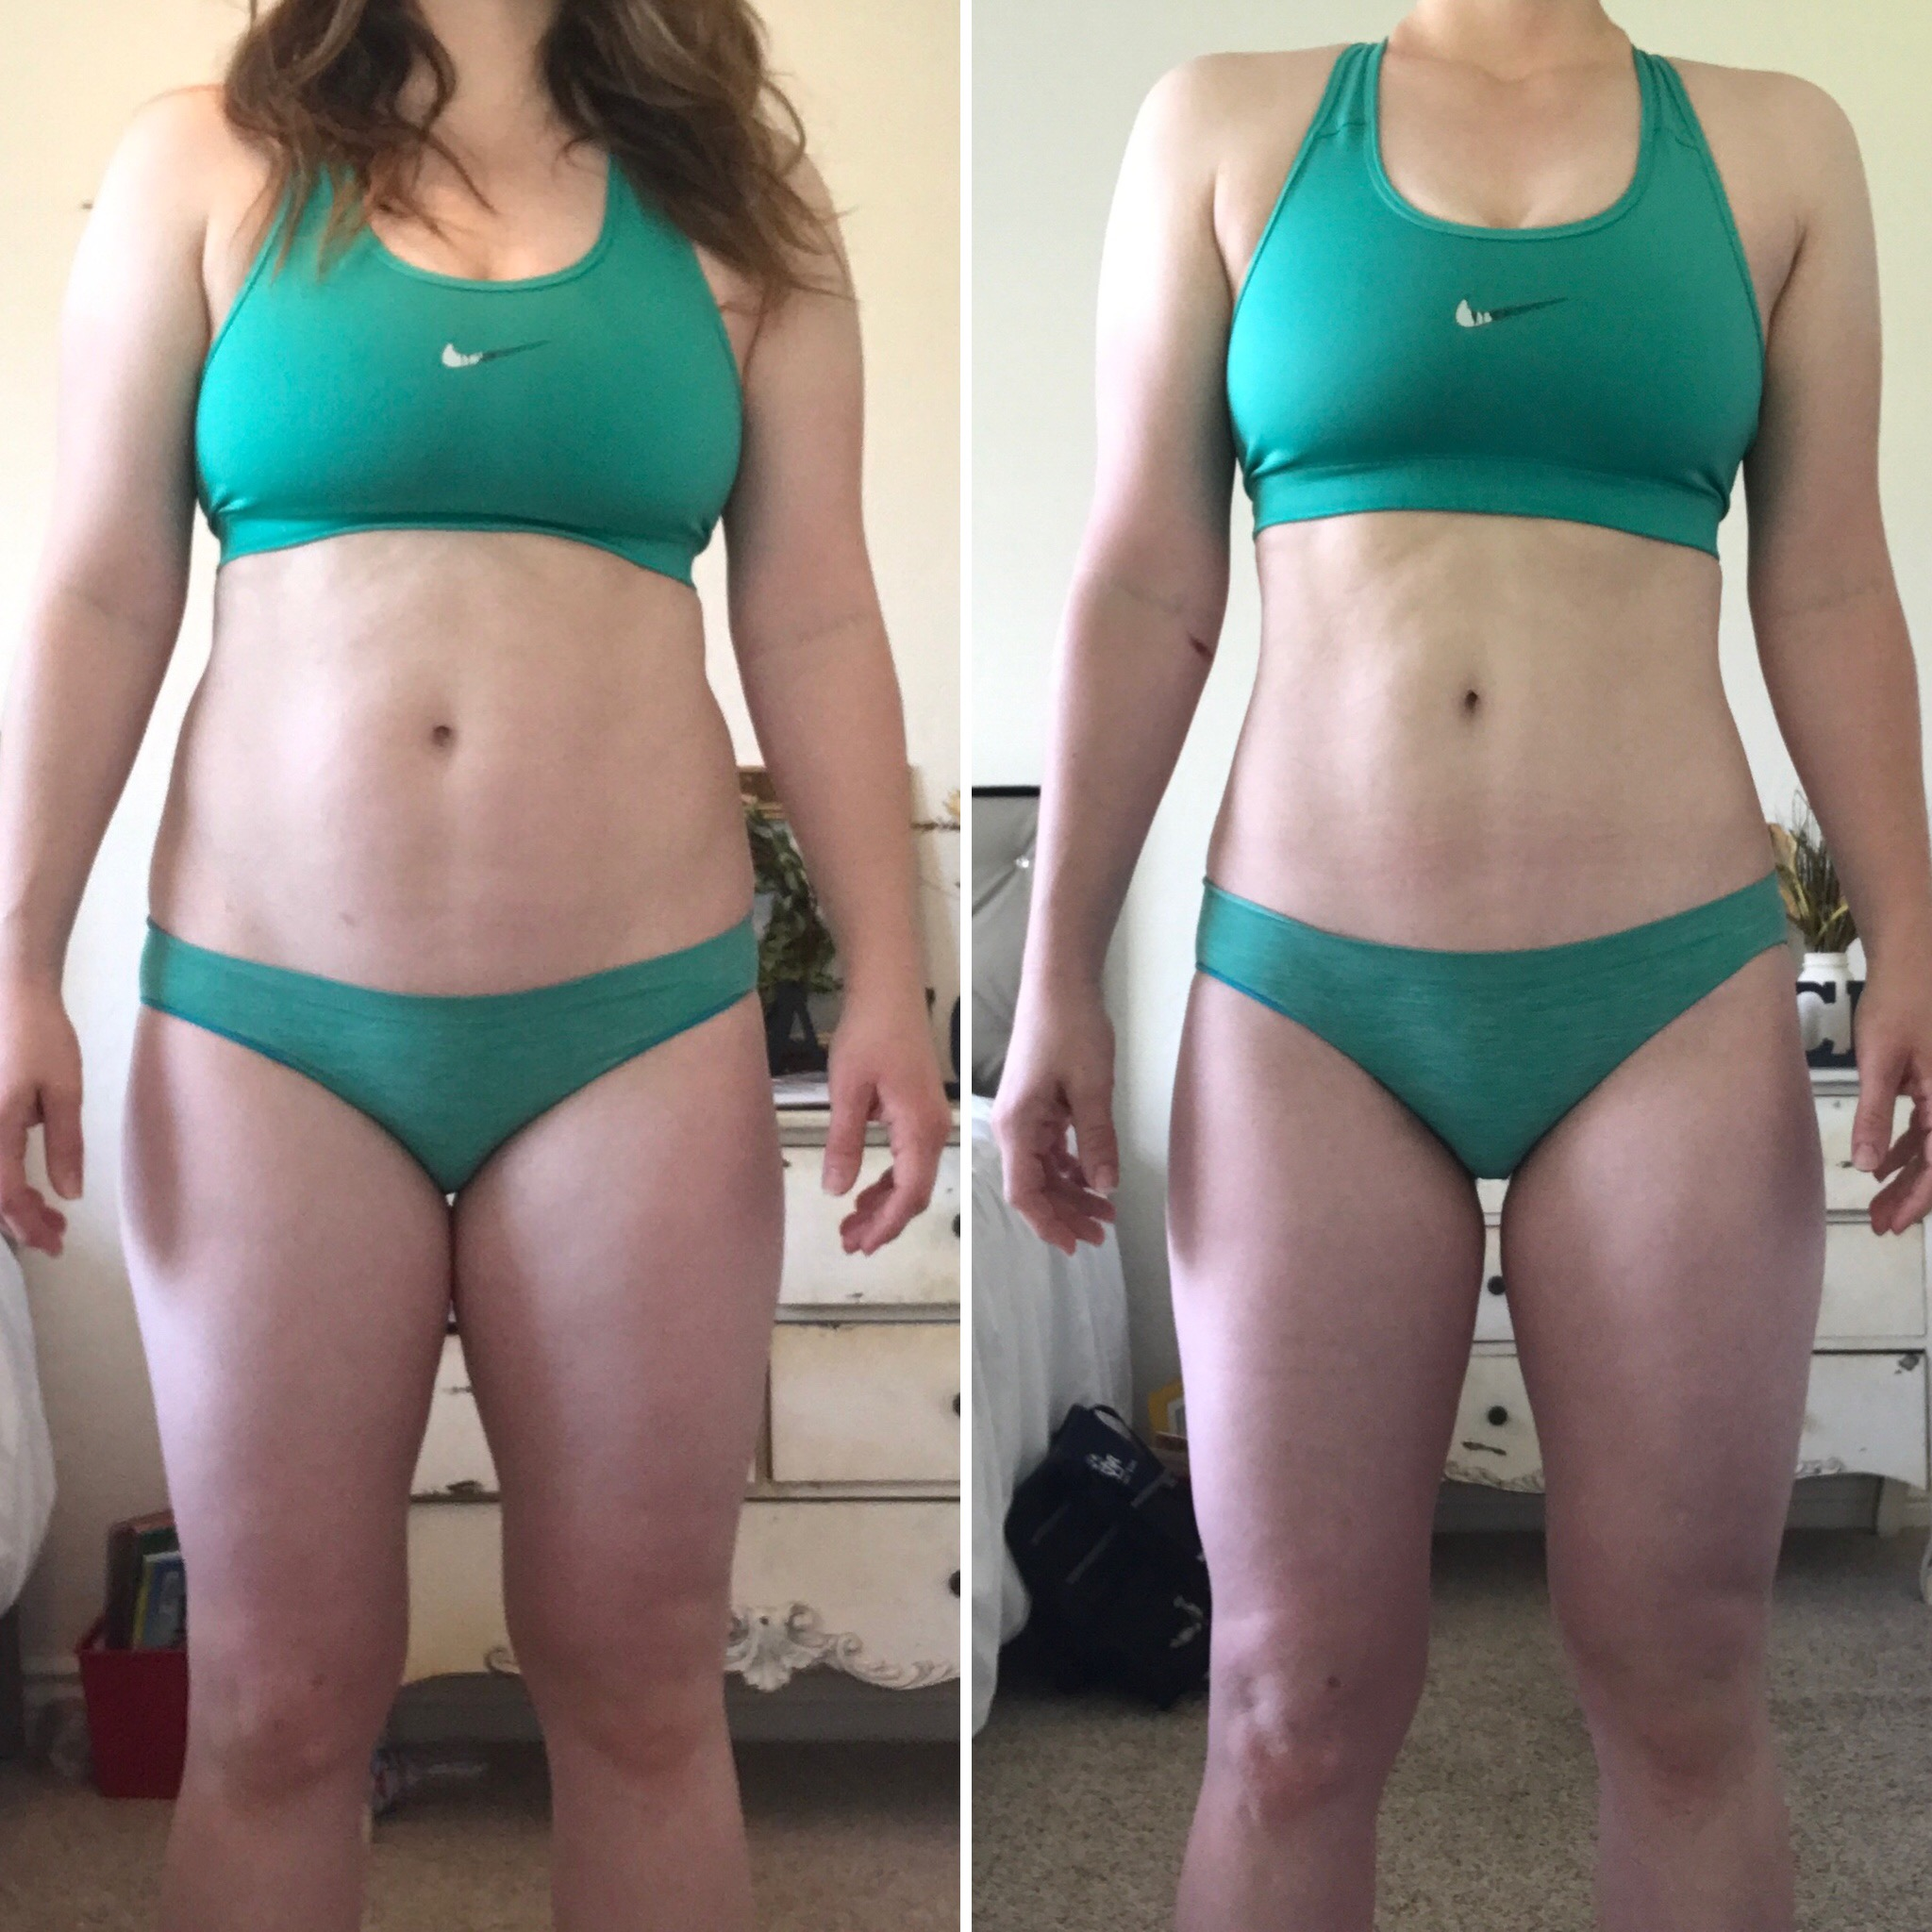 Feel Great in Eight V2 Client- Lost 17lbs, rejuvenated her health!